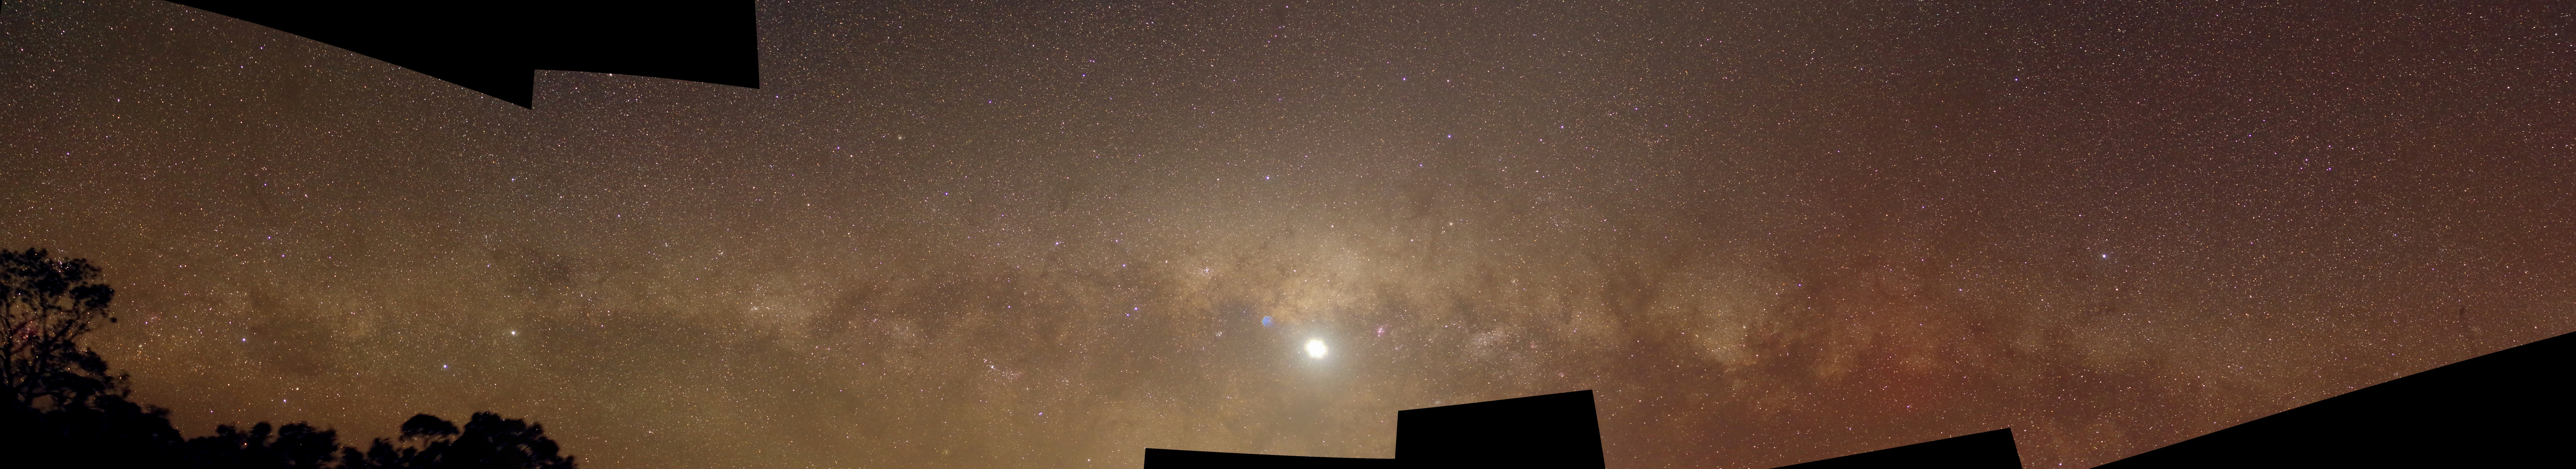 venus and milky way panorama